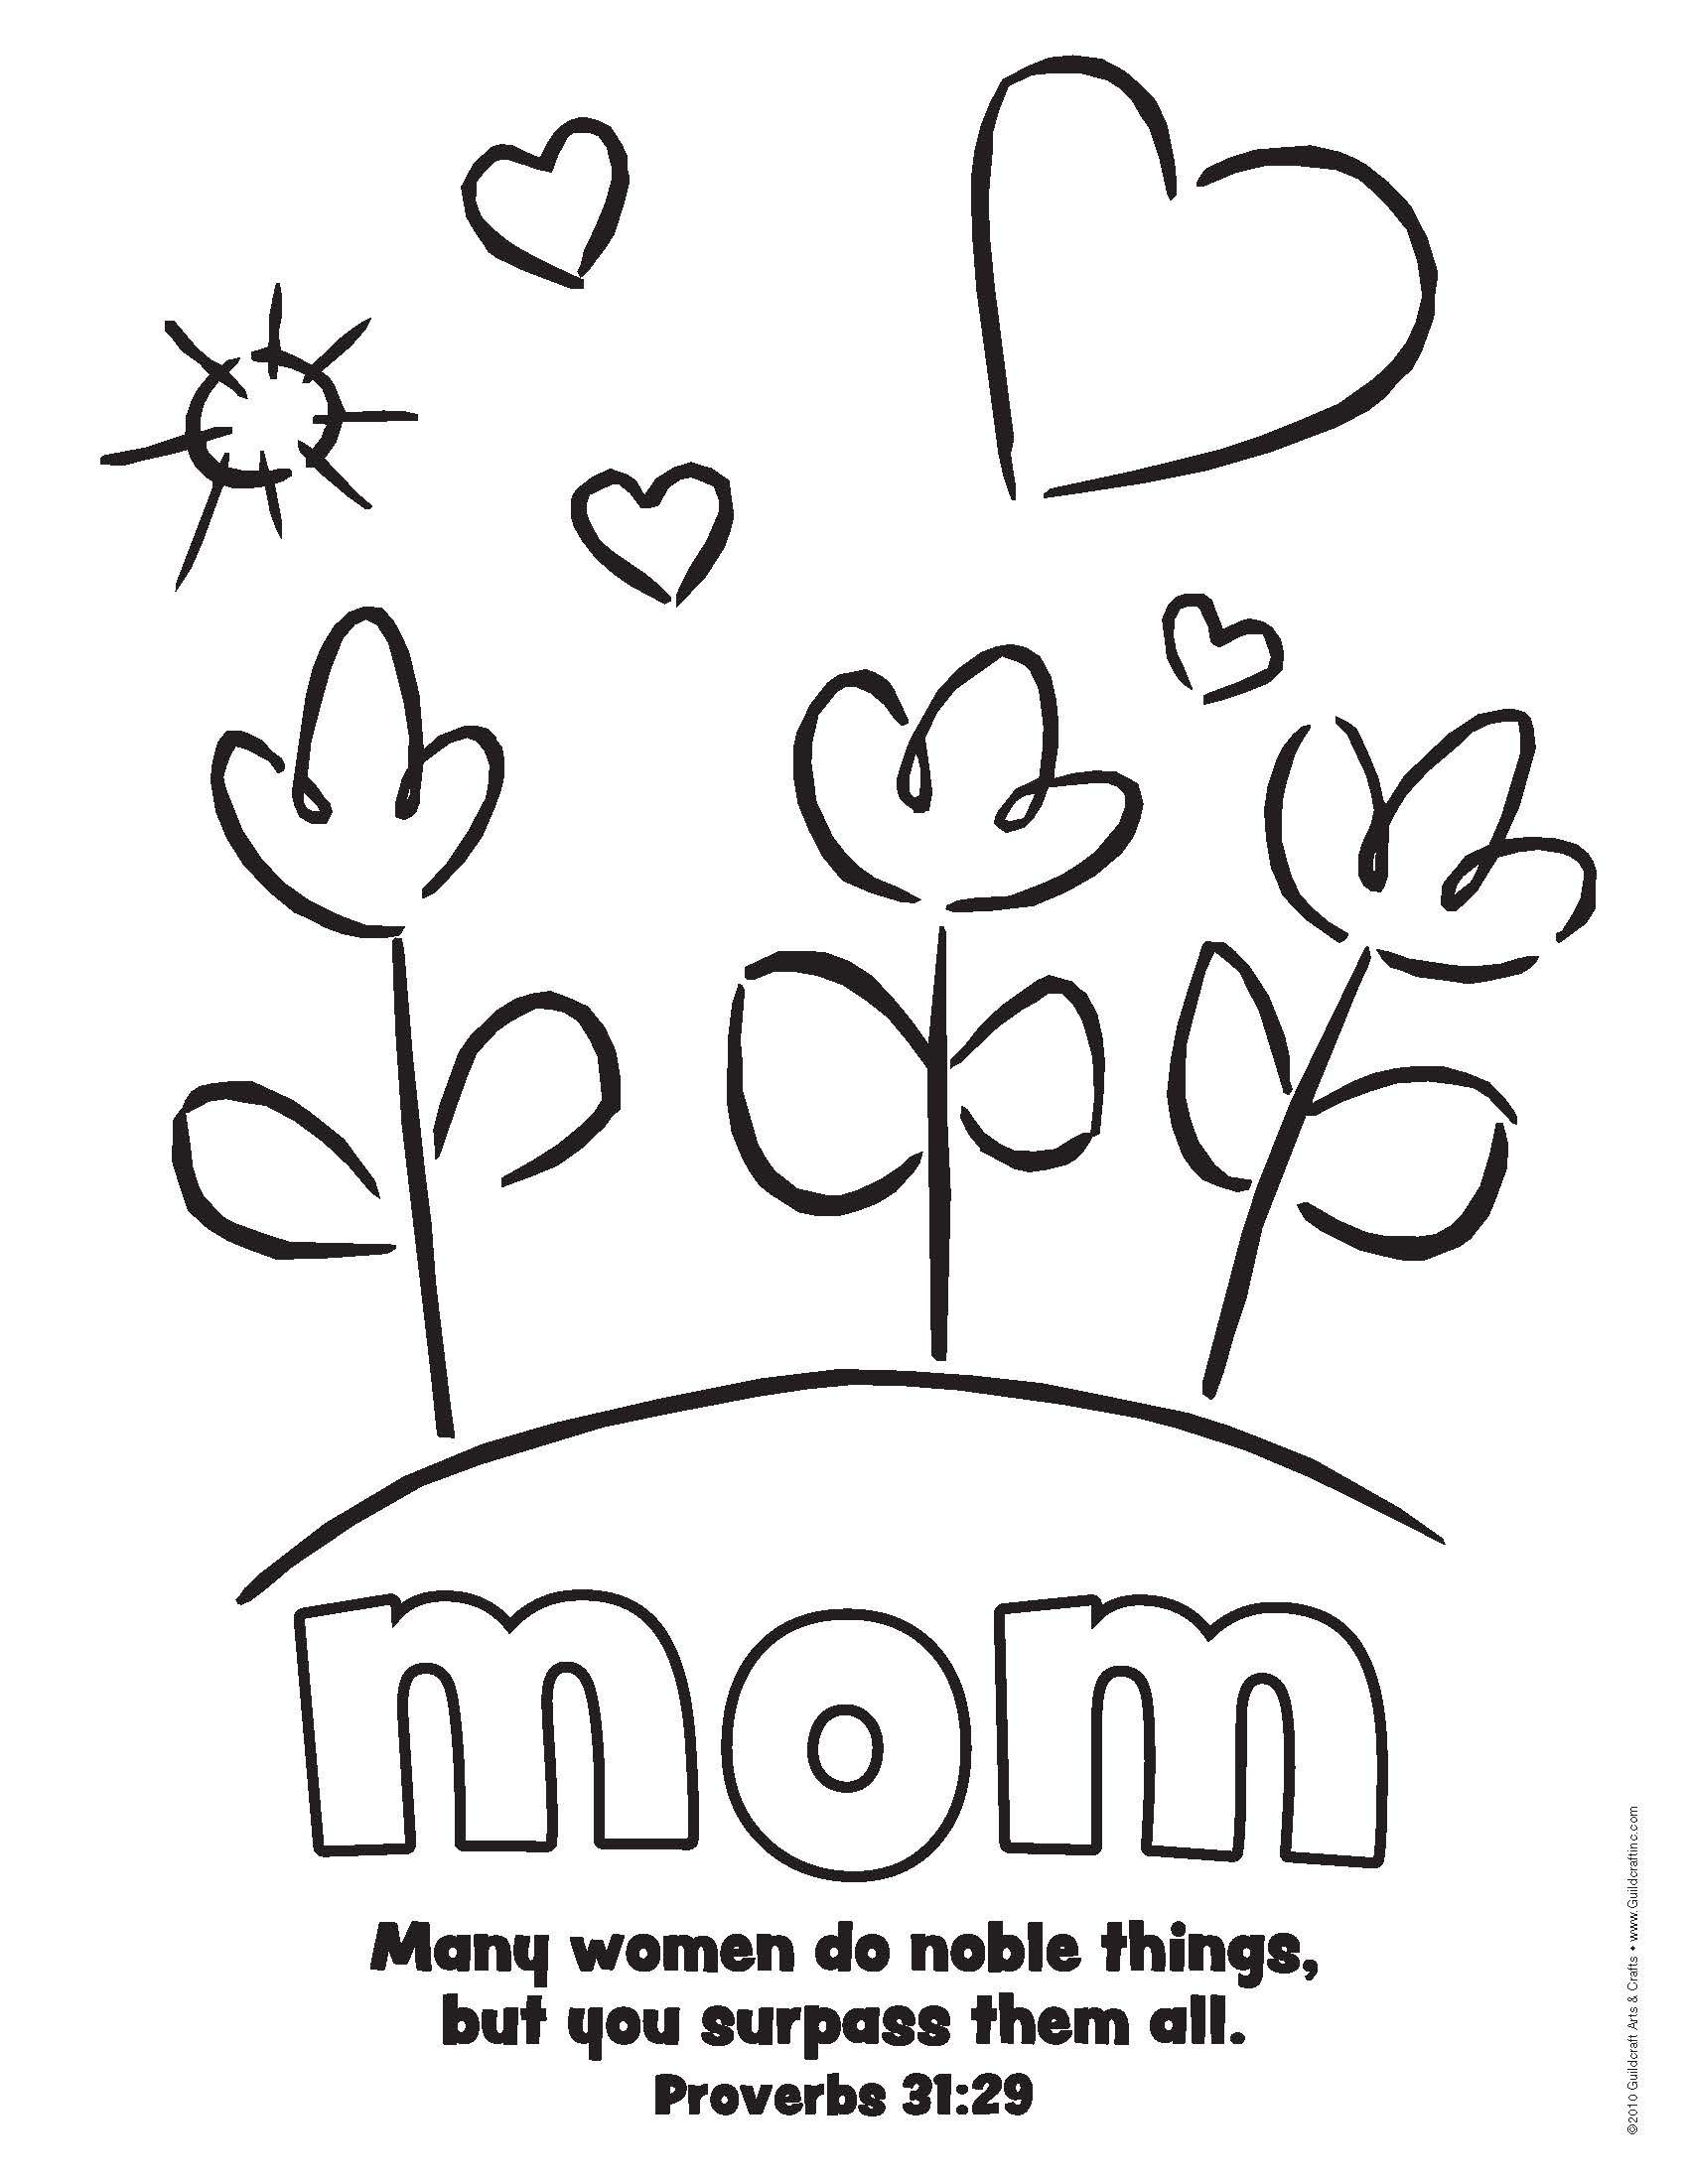 Printable coloring pages religious items - Simple Mother S Day Printable With Prov 31 Bible Verse Www Guildcraftinc